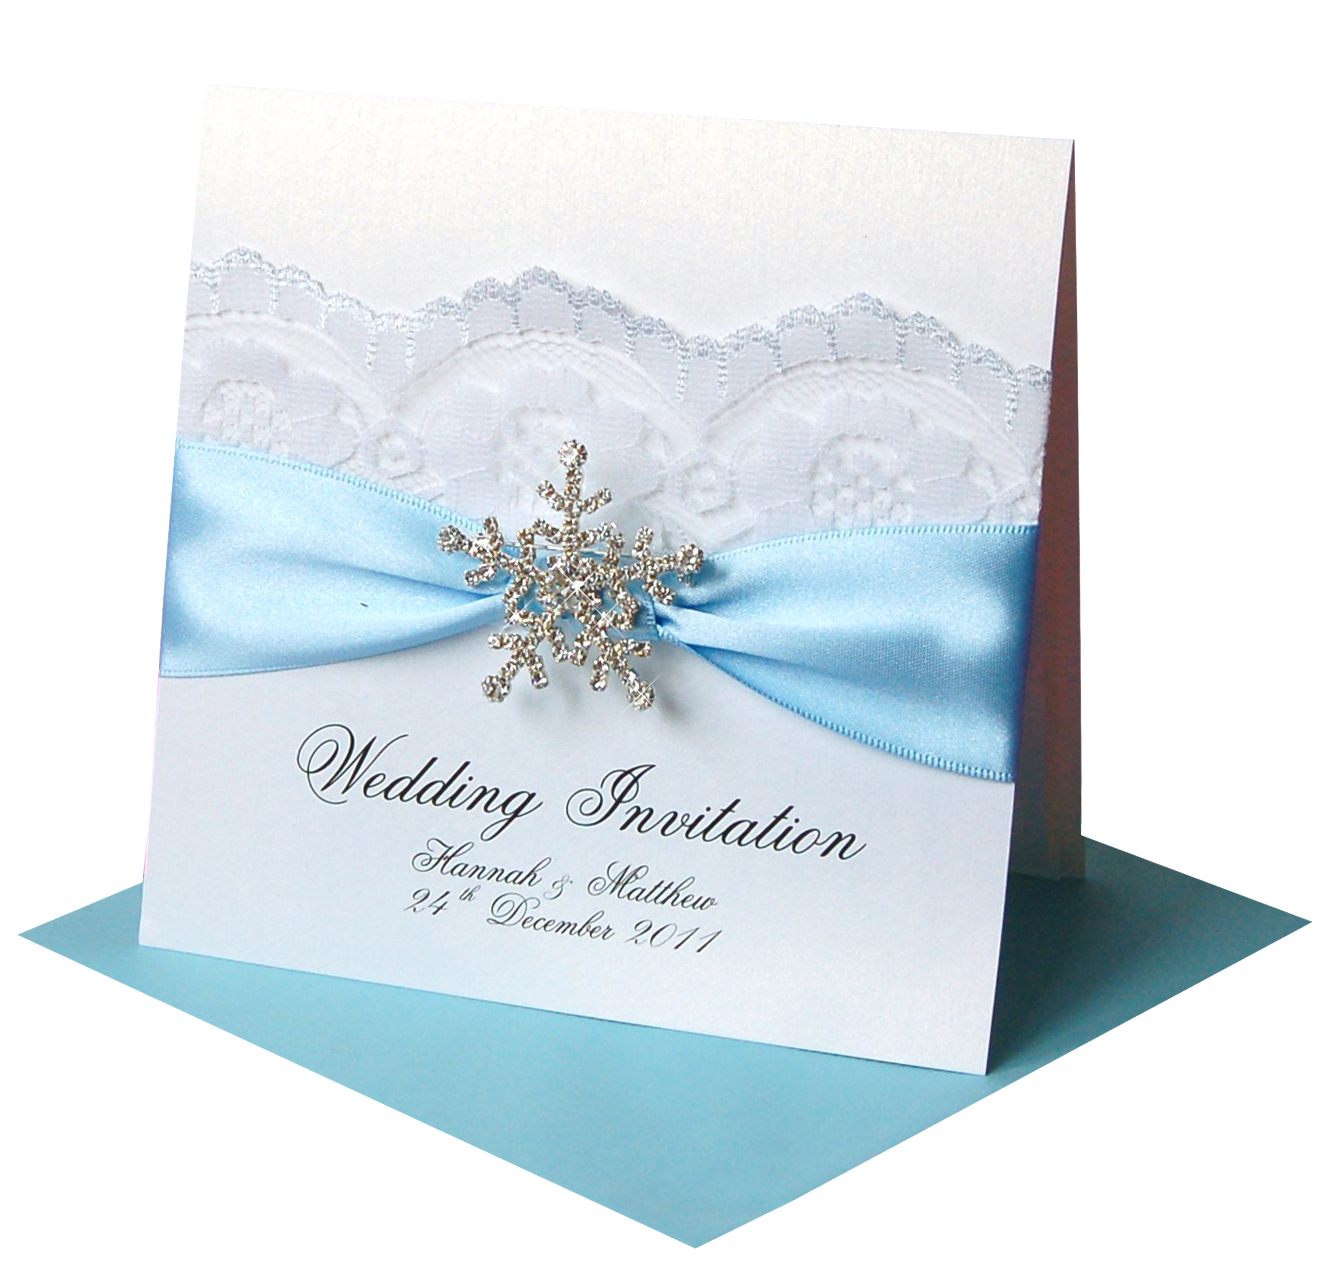 Winter Wedding Invitations Snowflake Crystal Made With Love Designs